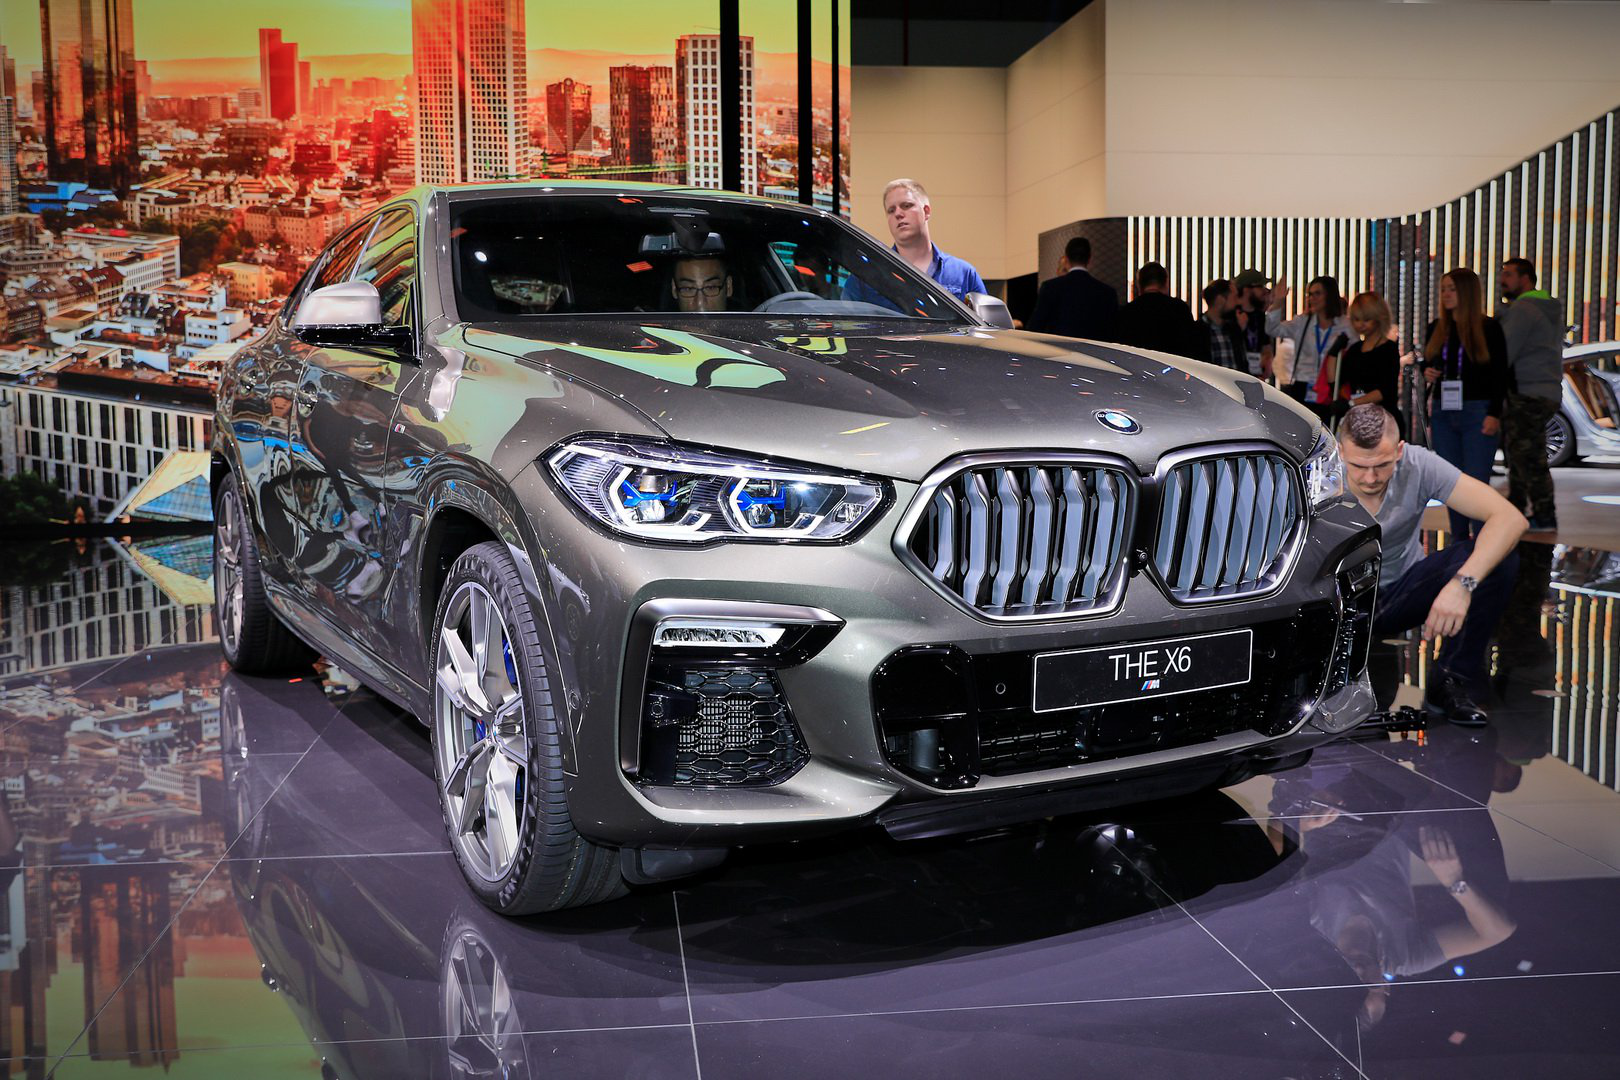 The Bold And The Very Fast 2020 Bmw X6 M50i Carmojo With 523 Hp From Its Twin Turbo V8 And A 0 62 Mph In Just 4 2 Seconds The M5 Bmw X6 Bmw Twin Turbo